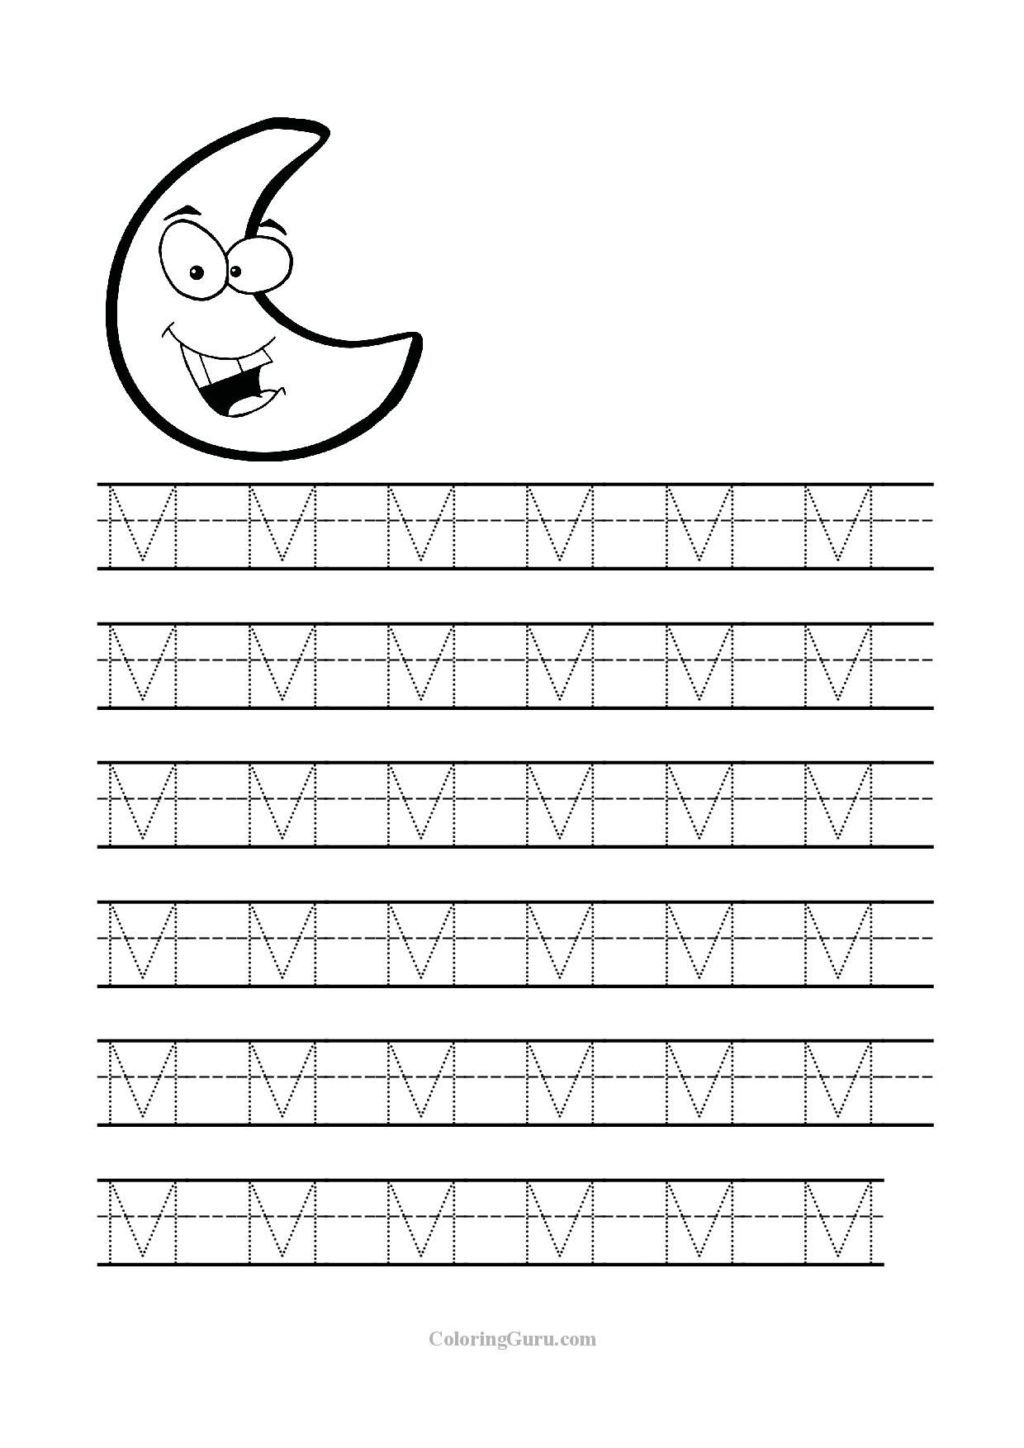 Letter M Worksheets Preschool Worksheet Letters Practice for Preschoolers Free Printable